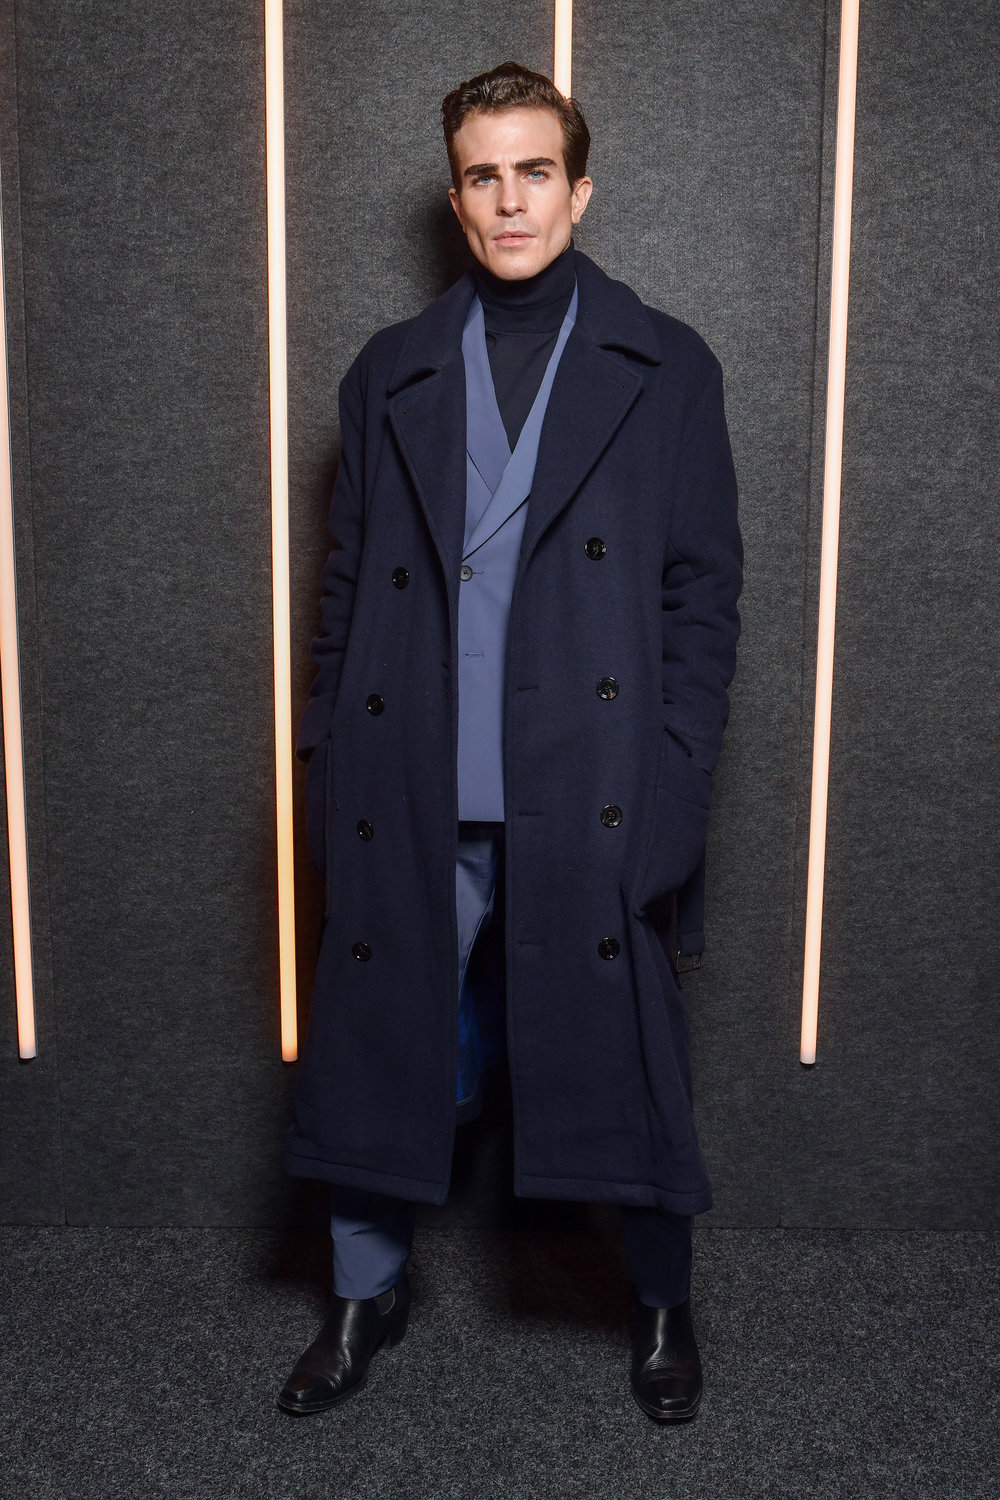 Carlo Sestini backstage at the BOSS Fall/Winter 2019 show at Basketball City during New York Fashion Week on Wednesday, February 13, in New York City. Photography, Courtesy of BOSS.